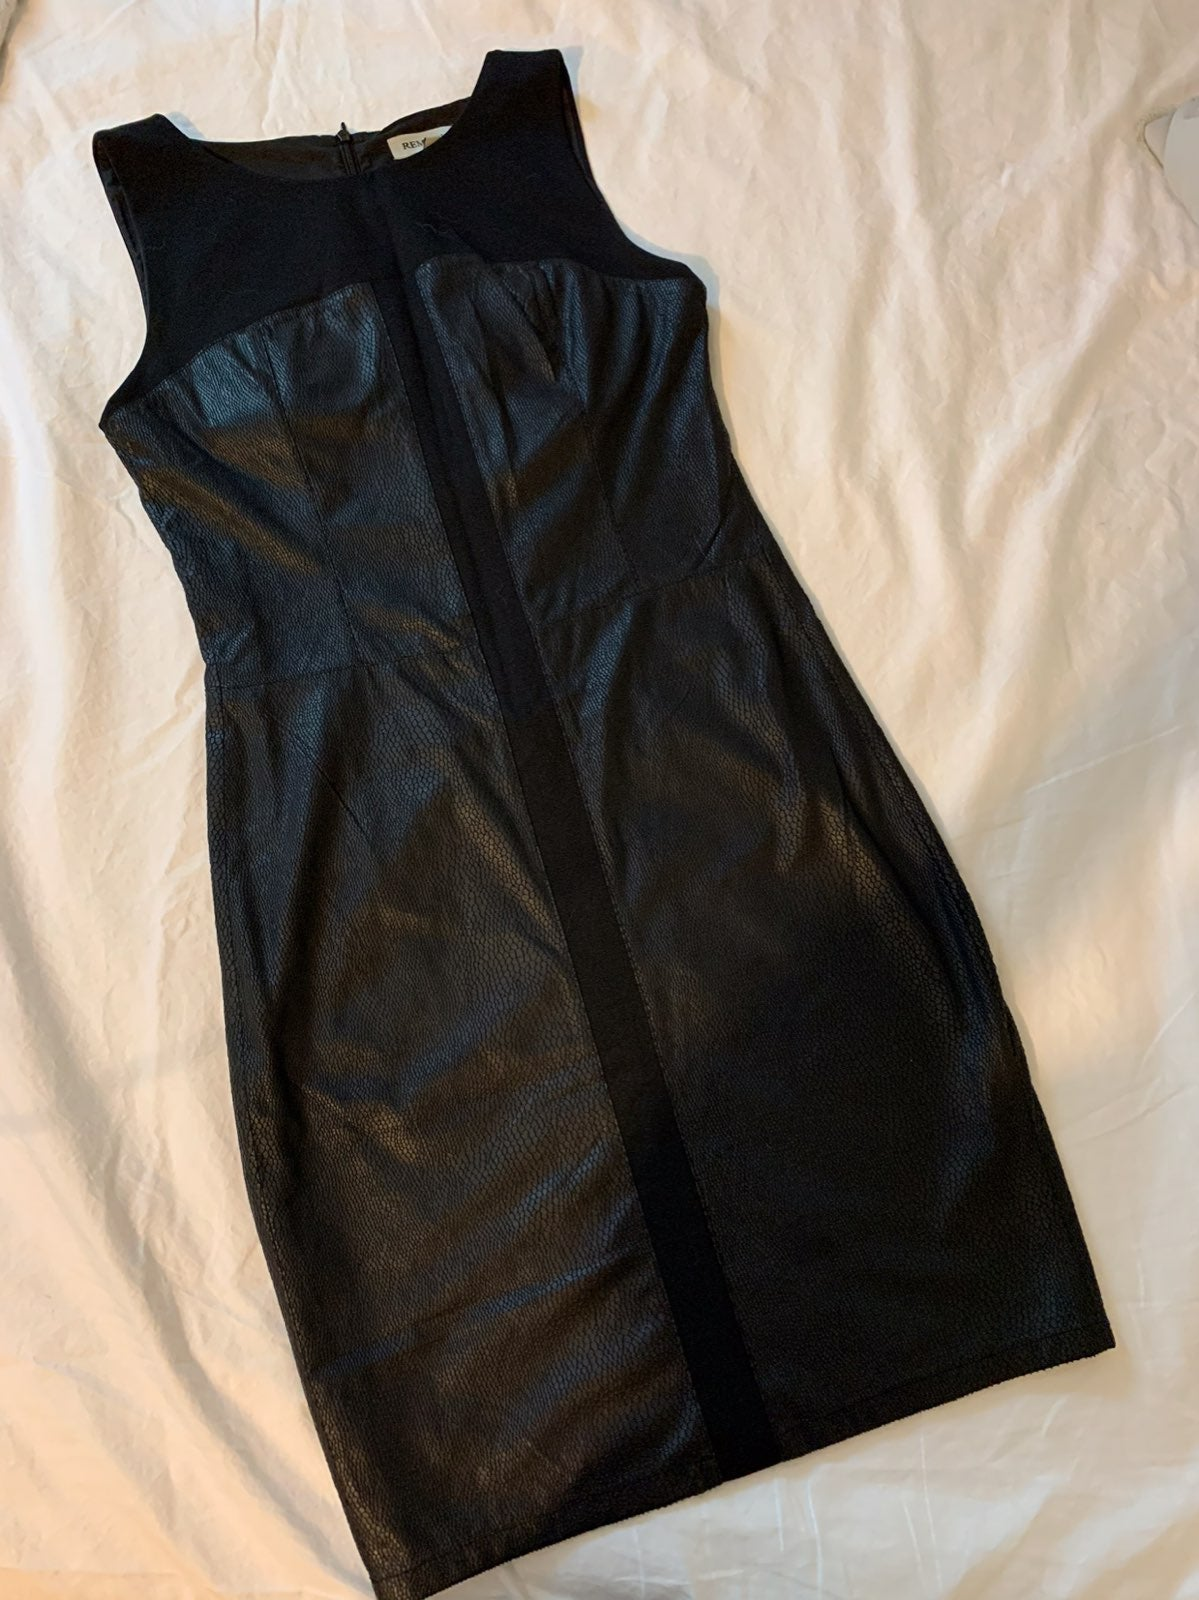 Remain S black dress